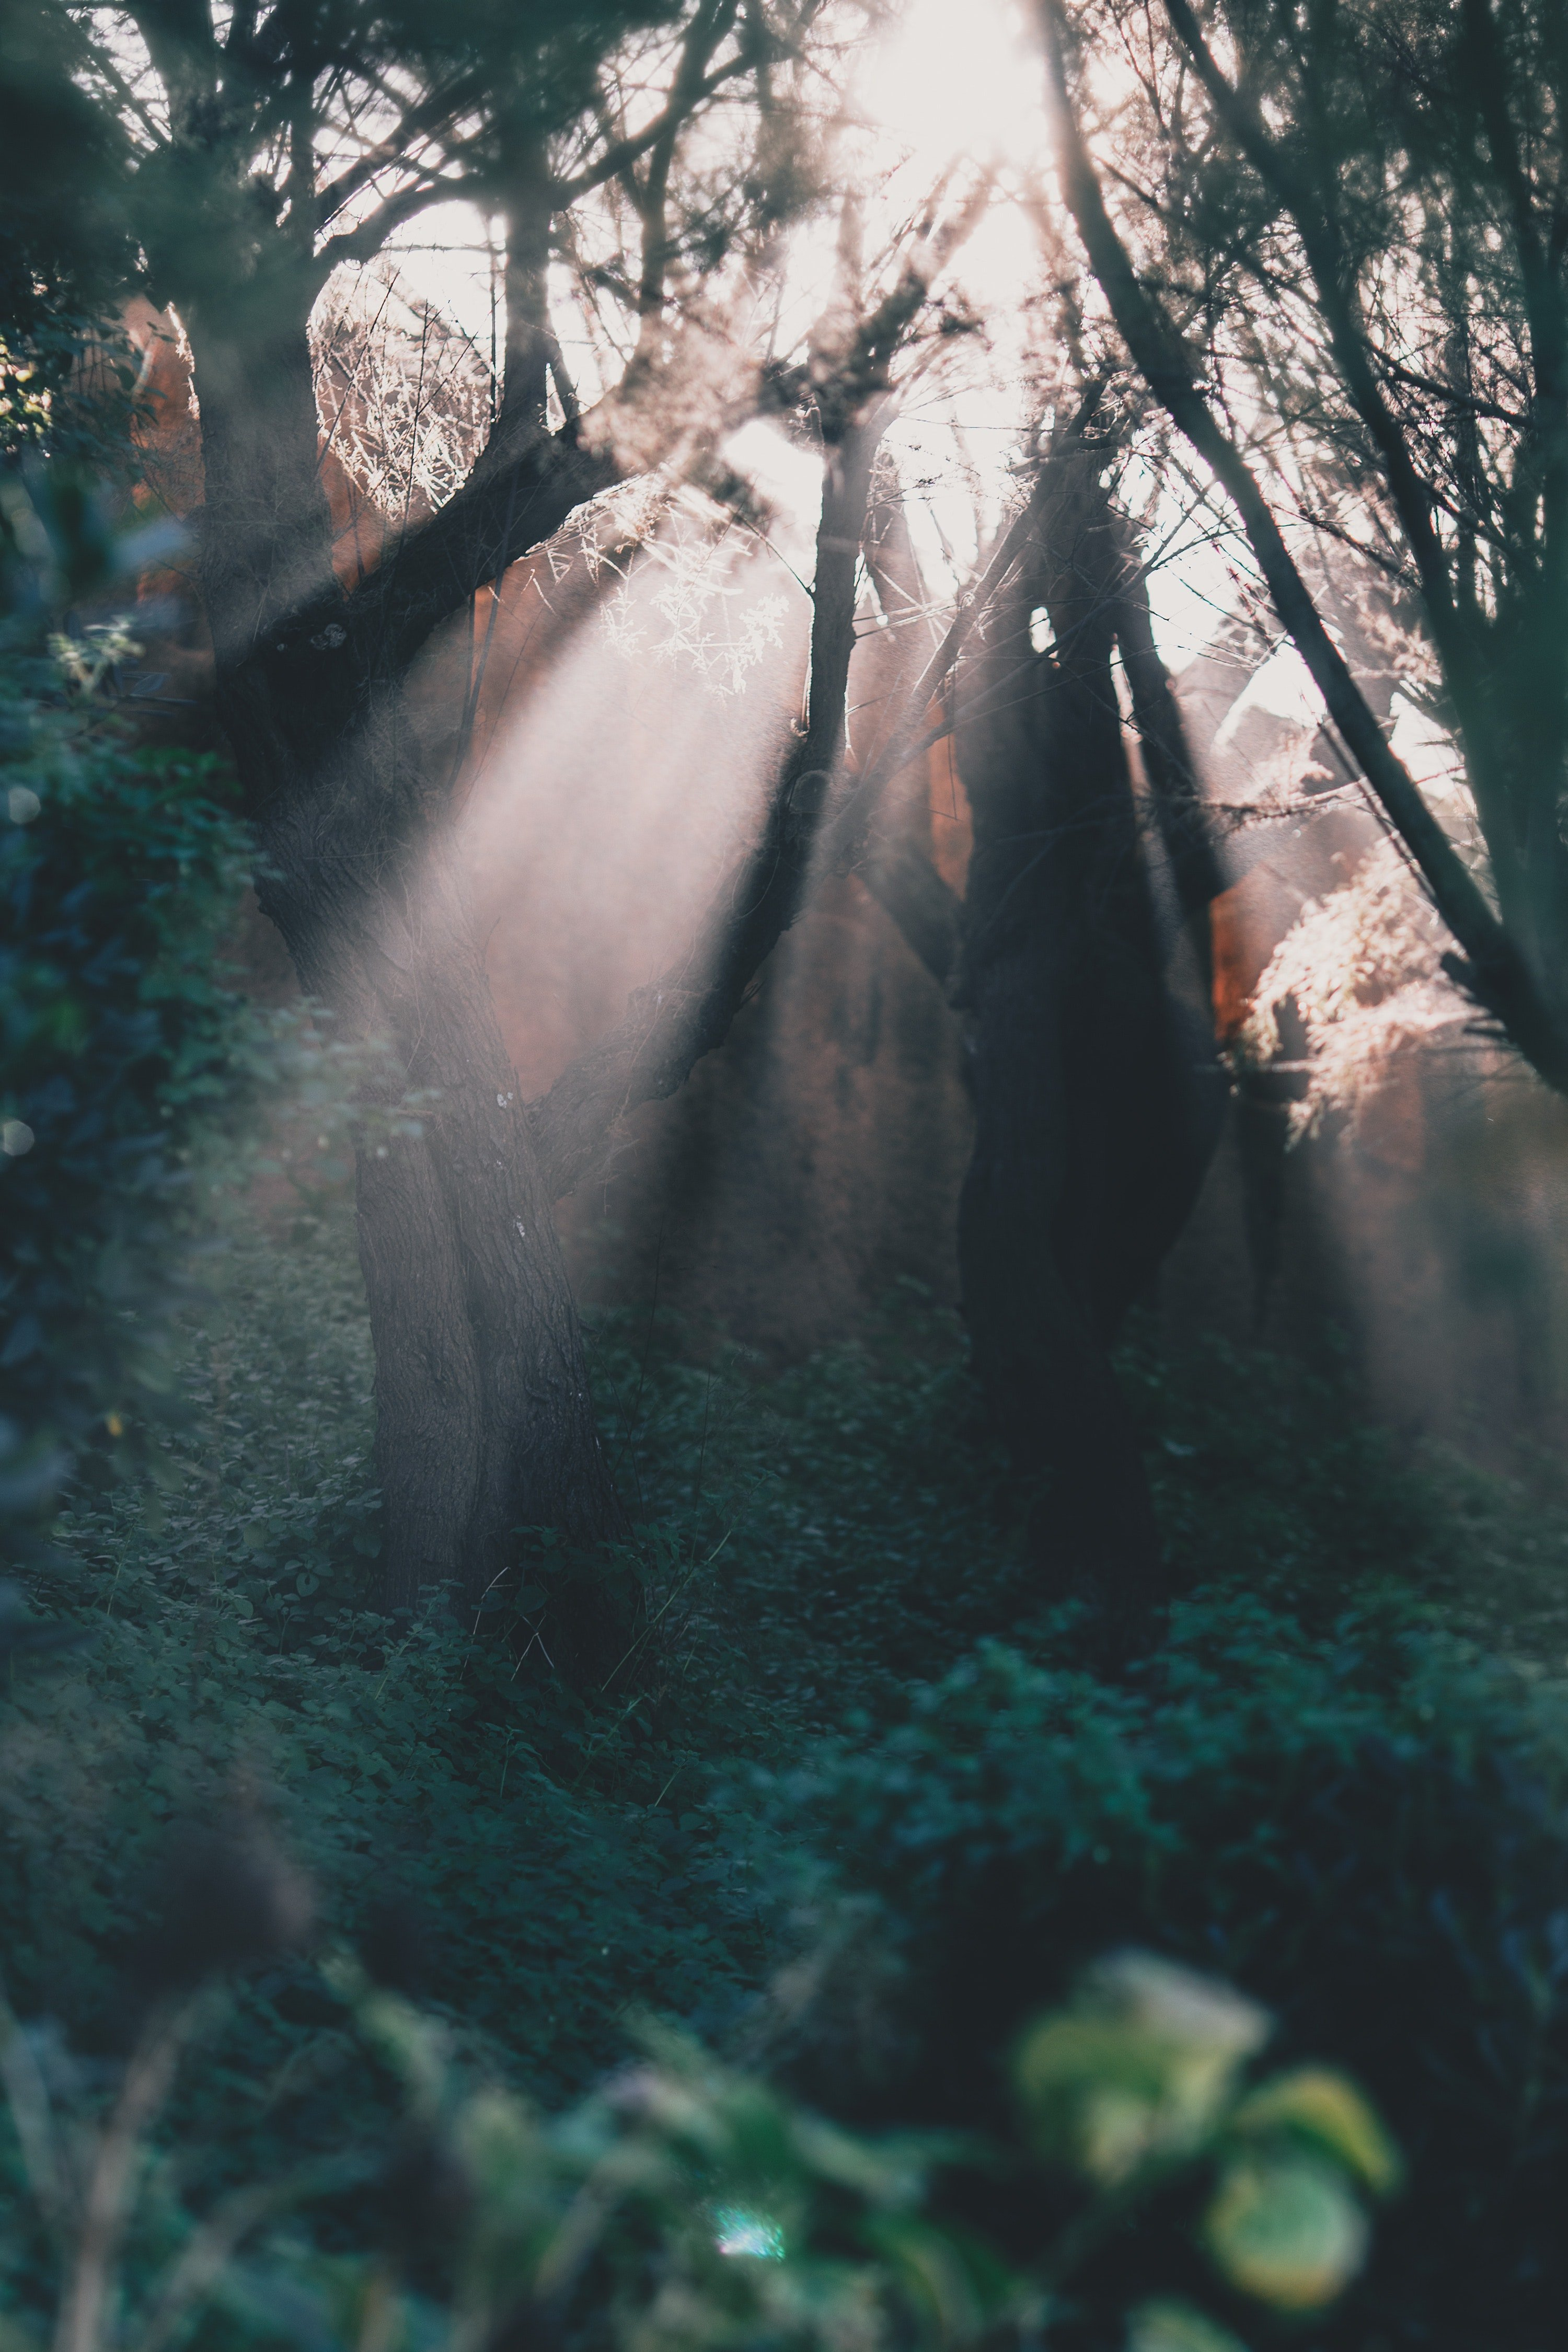 Pictured - A photo of a green forest illuminated by sun beams | Source: Pexels